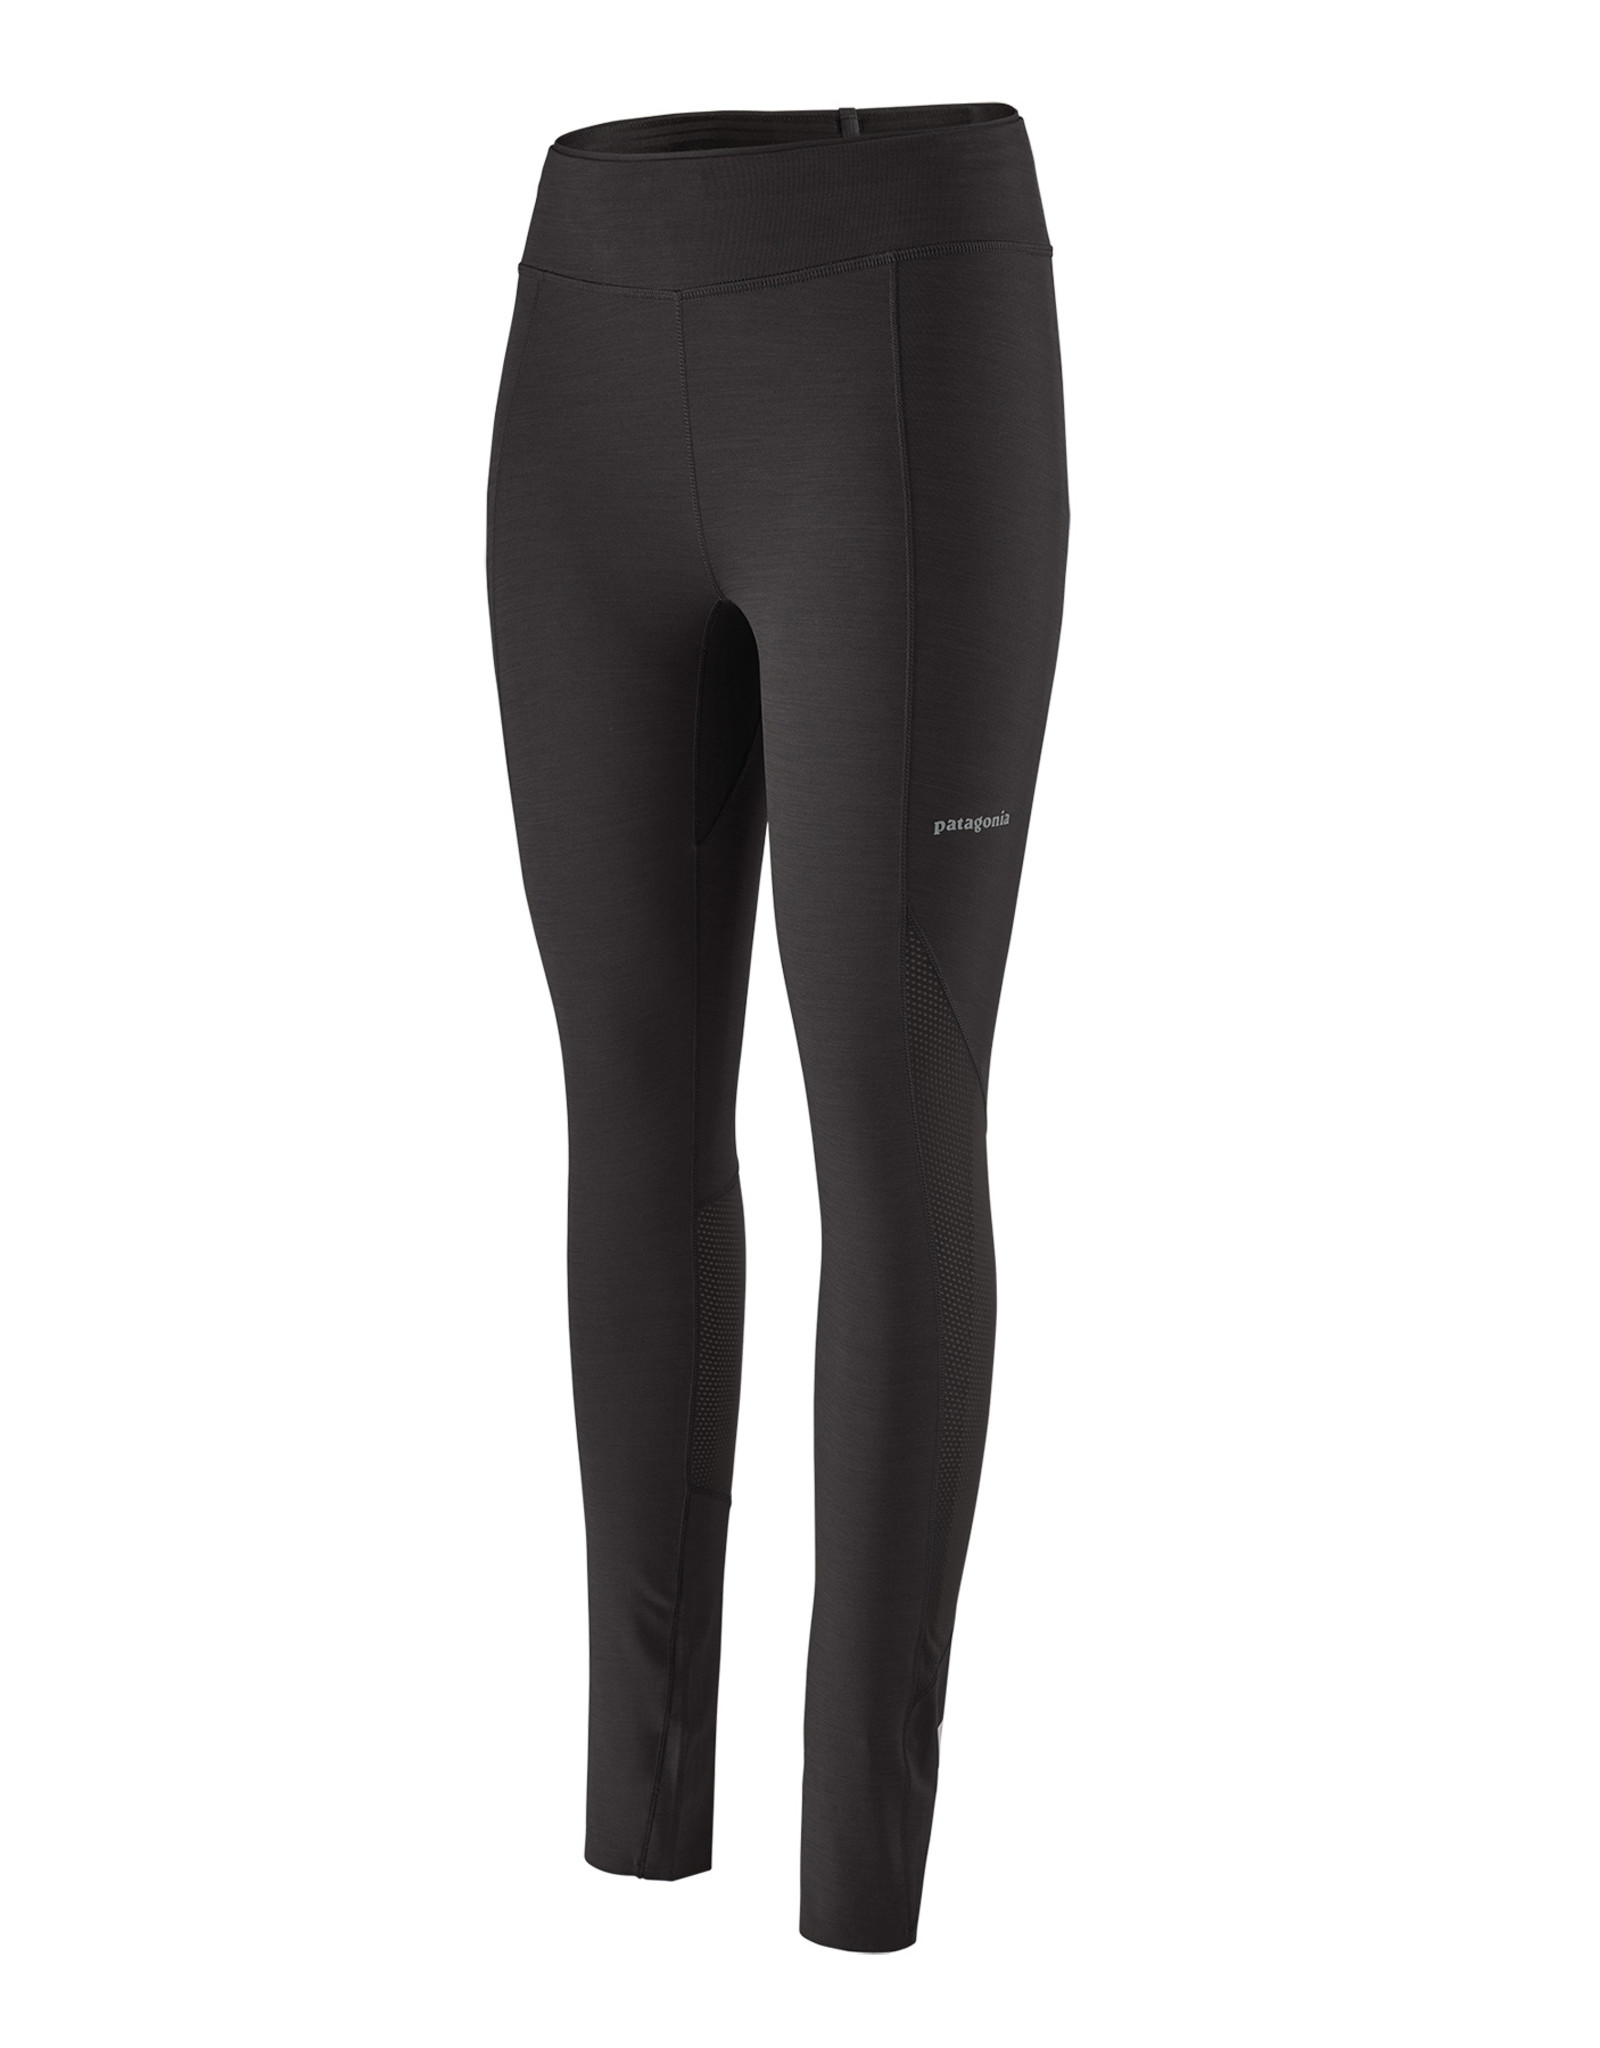 patagonia Endless run tights dames (ref 24810)